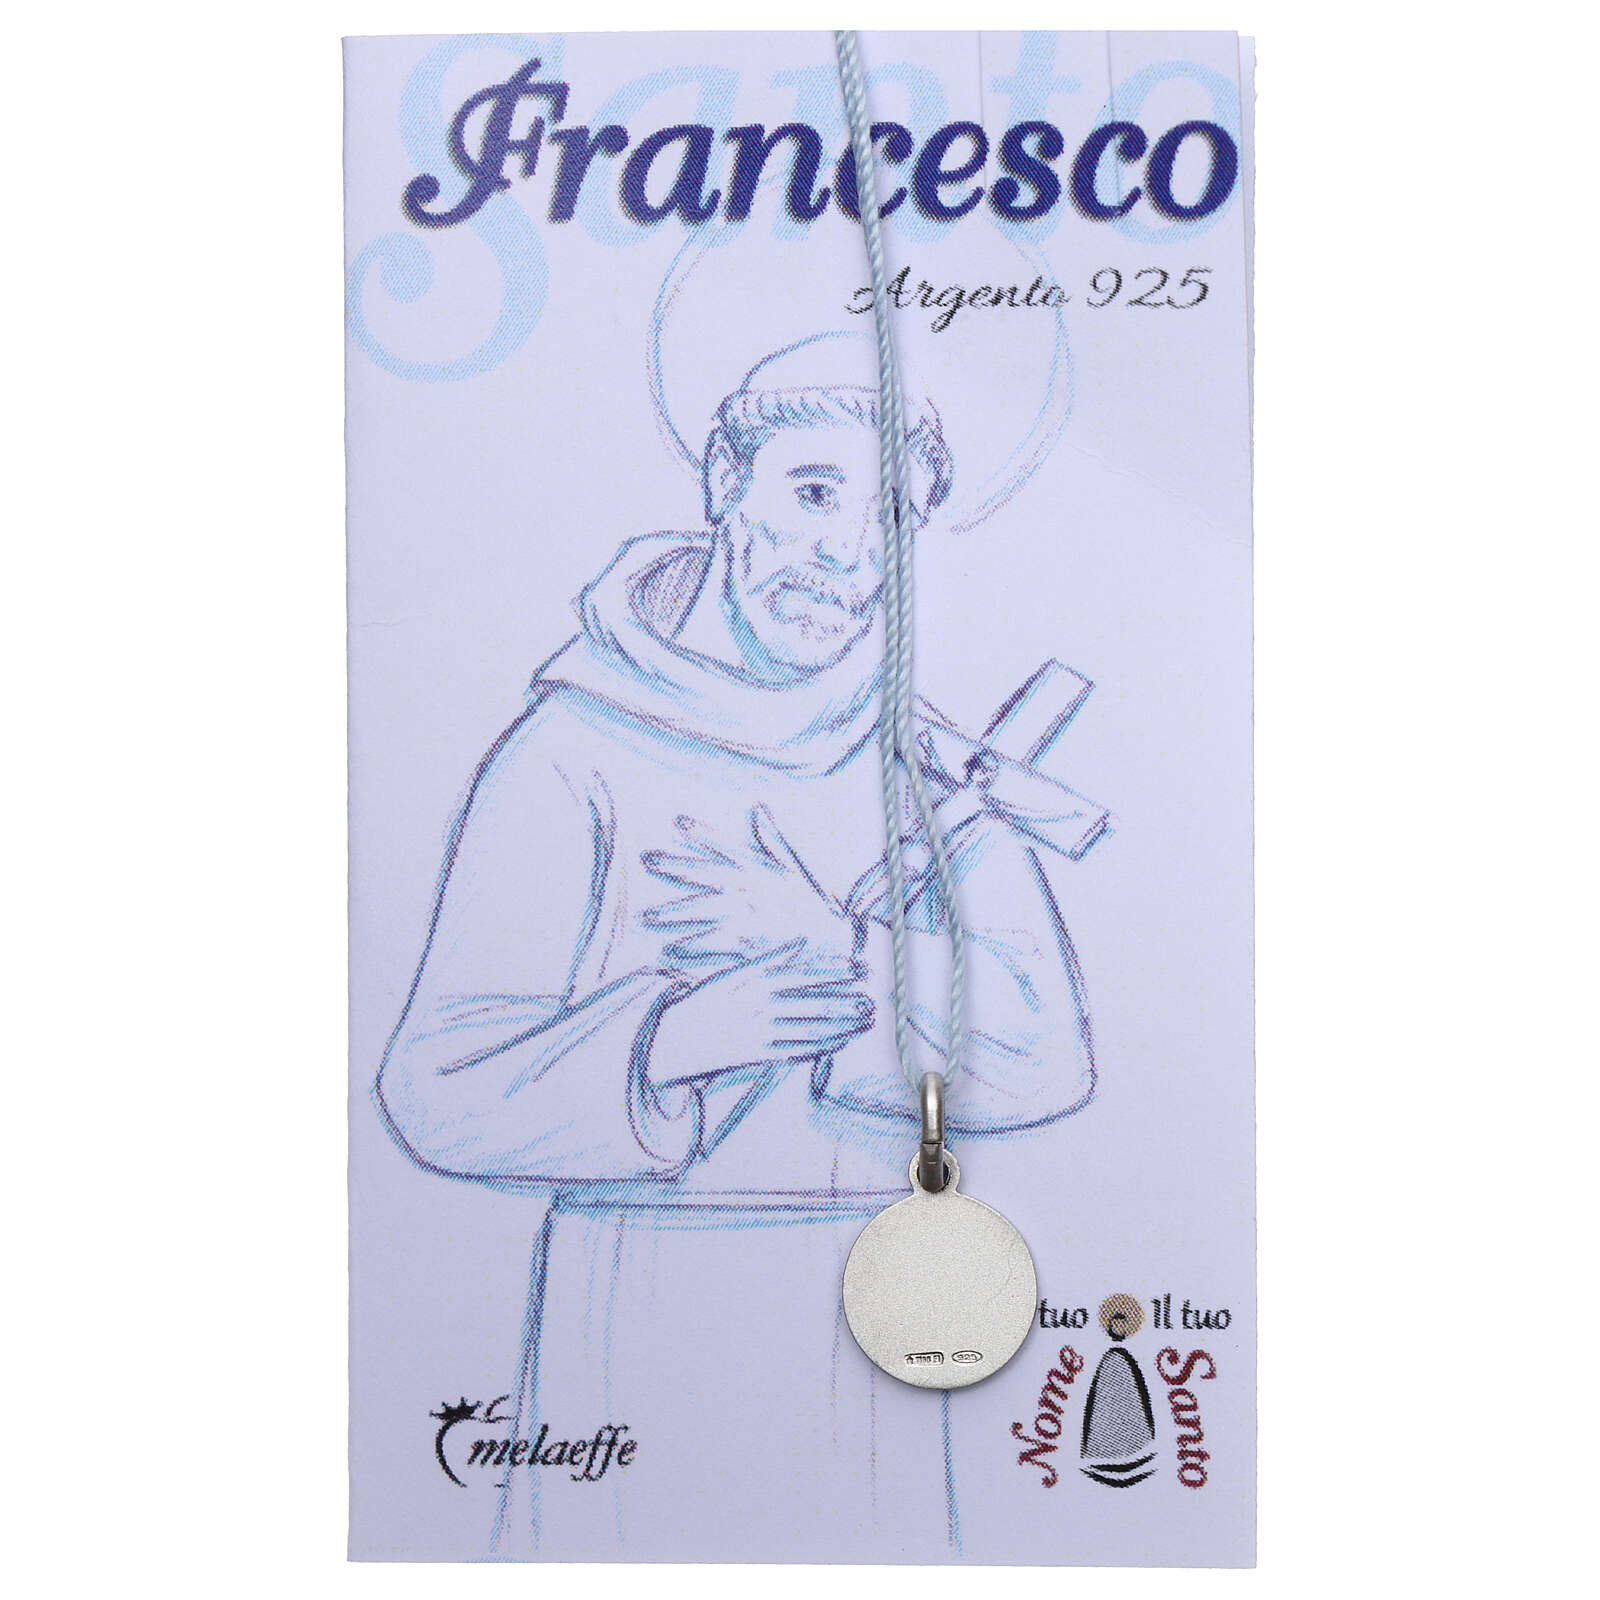 Saint Francis of Assisi medal 925 sterling silver 0.39 in 4